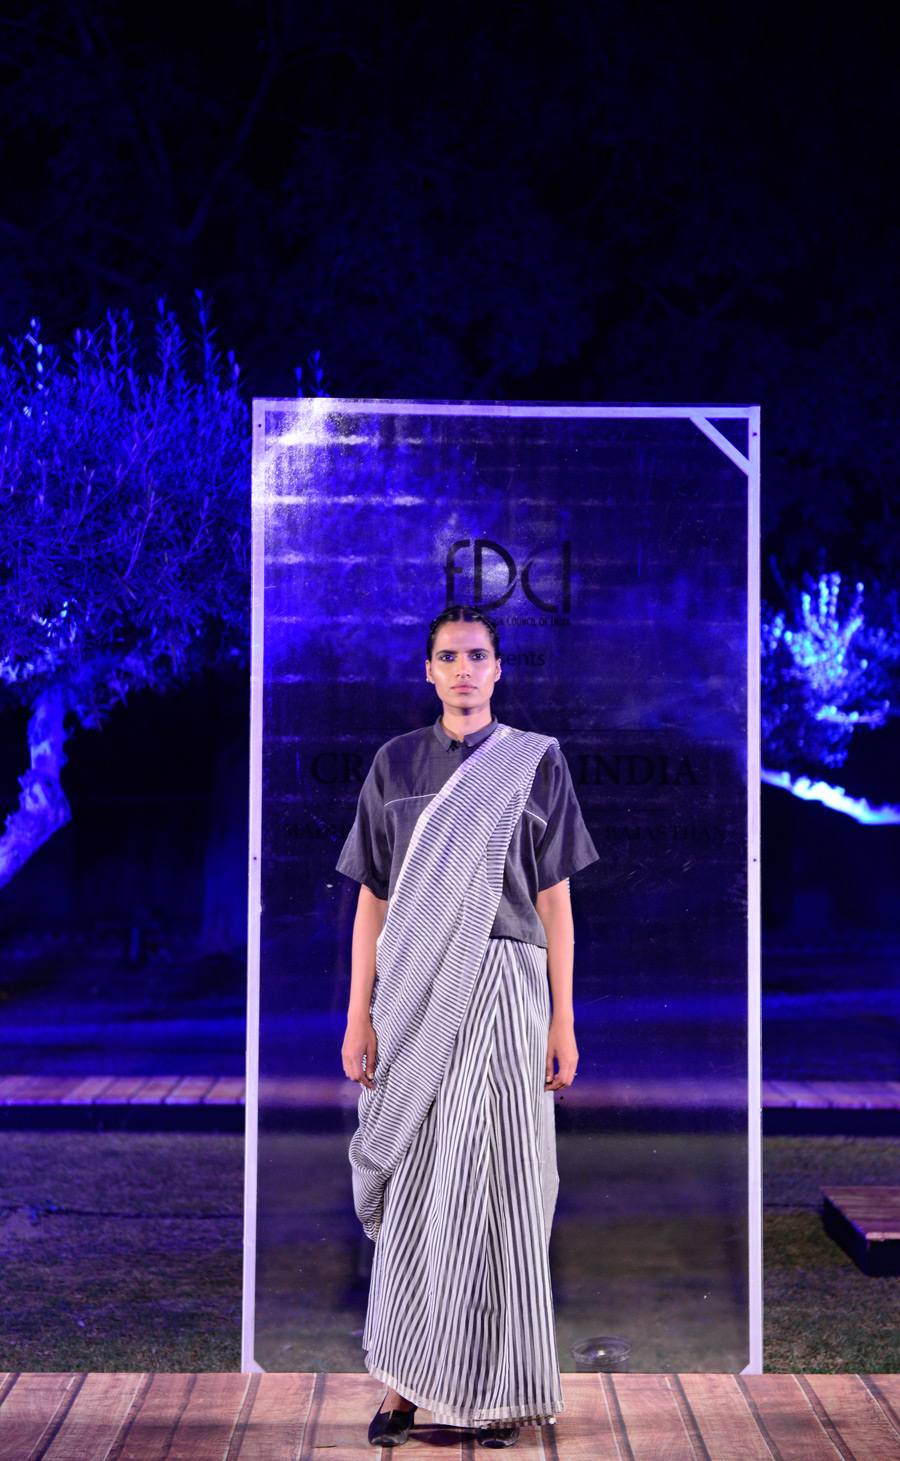 Sanjay-Garg-at-FDCI-presents-Crafted-in-India,-representing-Madhya-Pradesh.